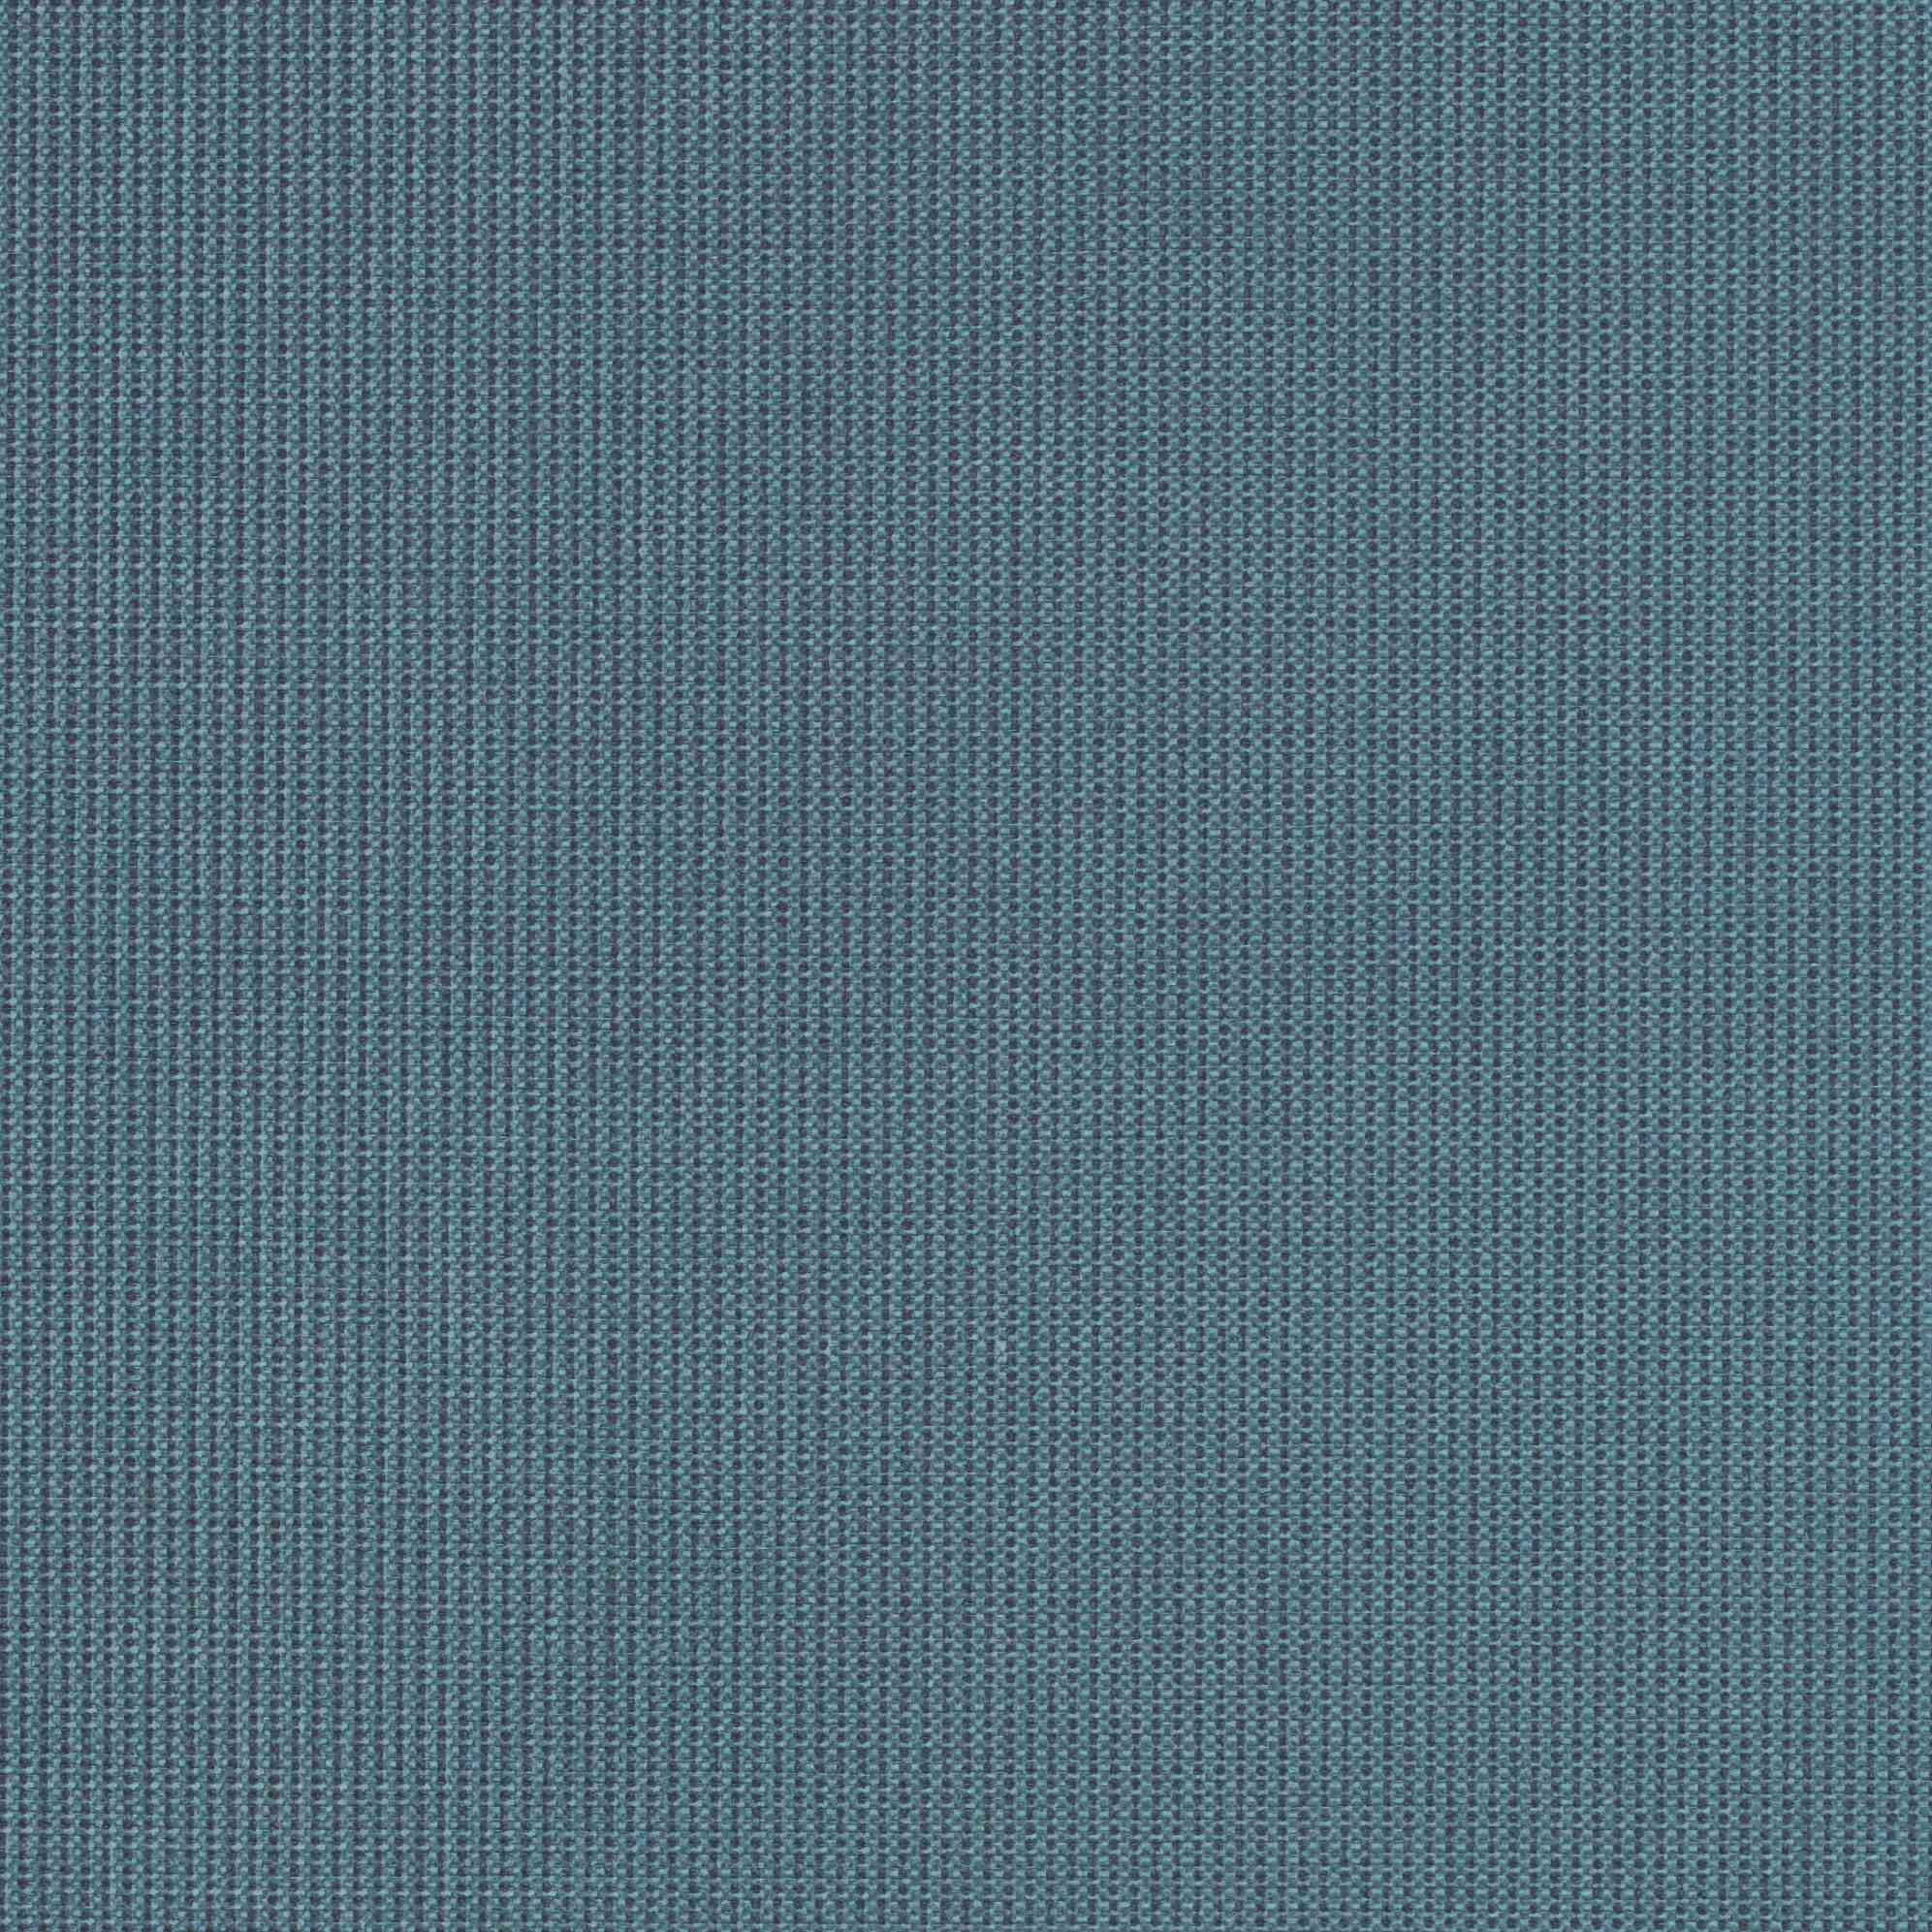 Acoustic Wall Panels | Sound Absorbing Panels | Screenflex Dividers